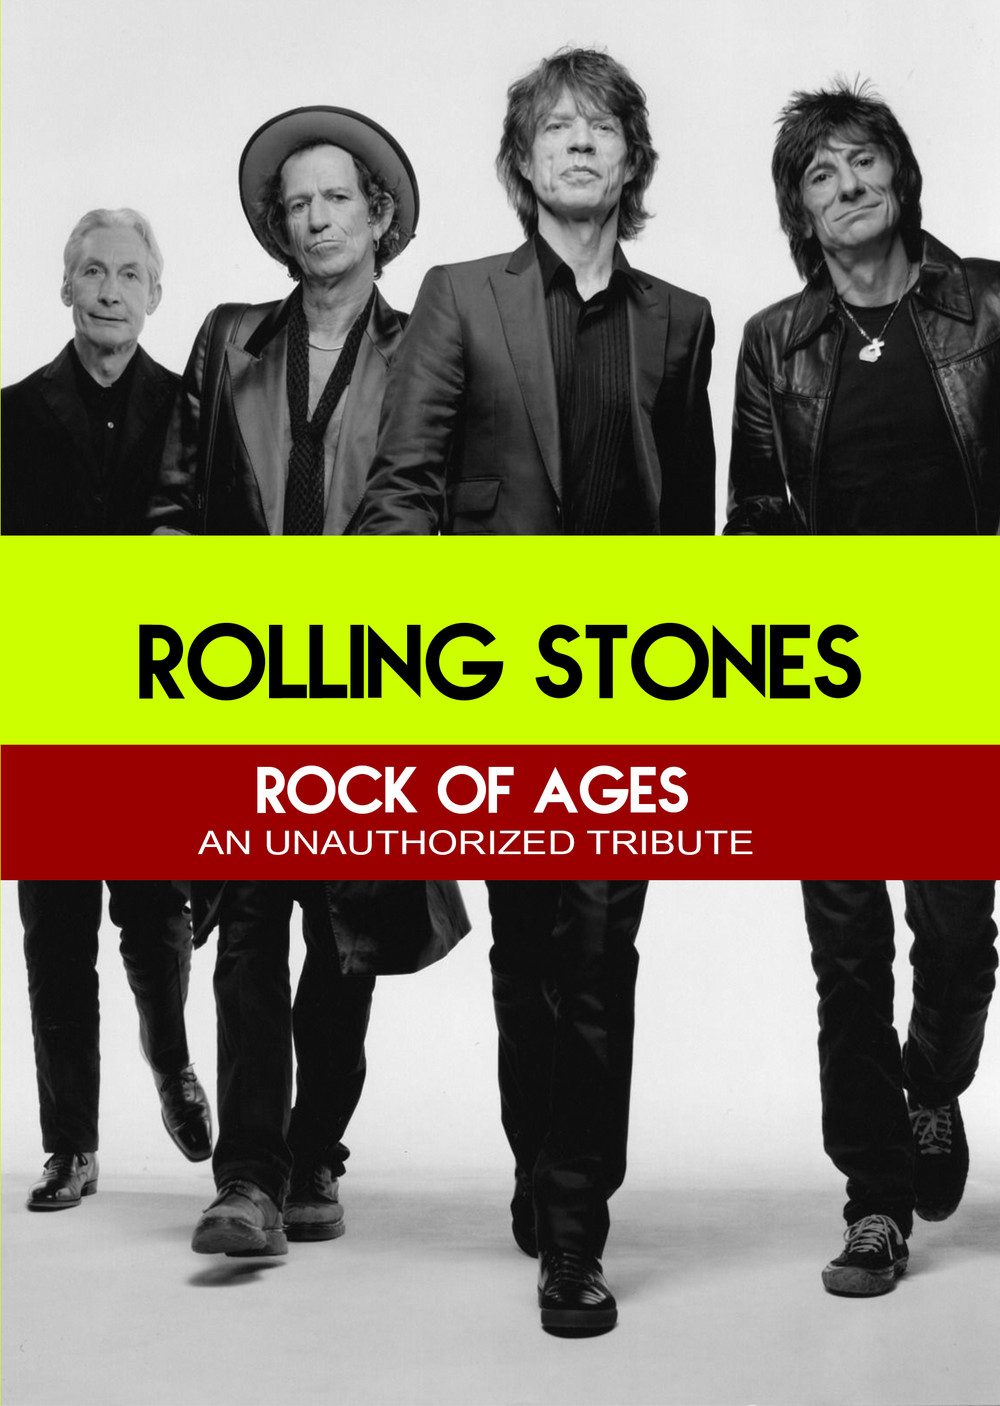 L7810 - The Rolling Stones Rock of Ages - An unauthorized Story